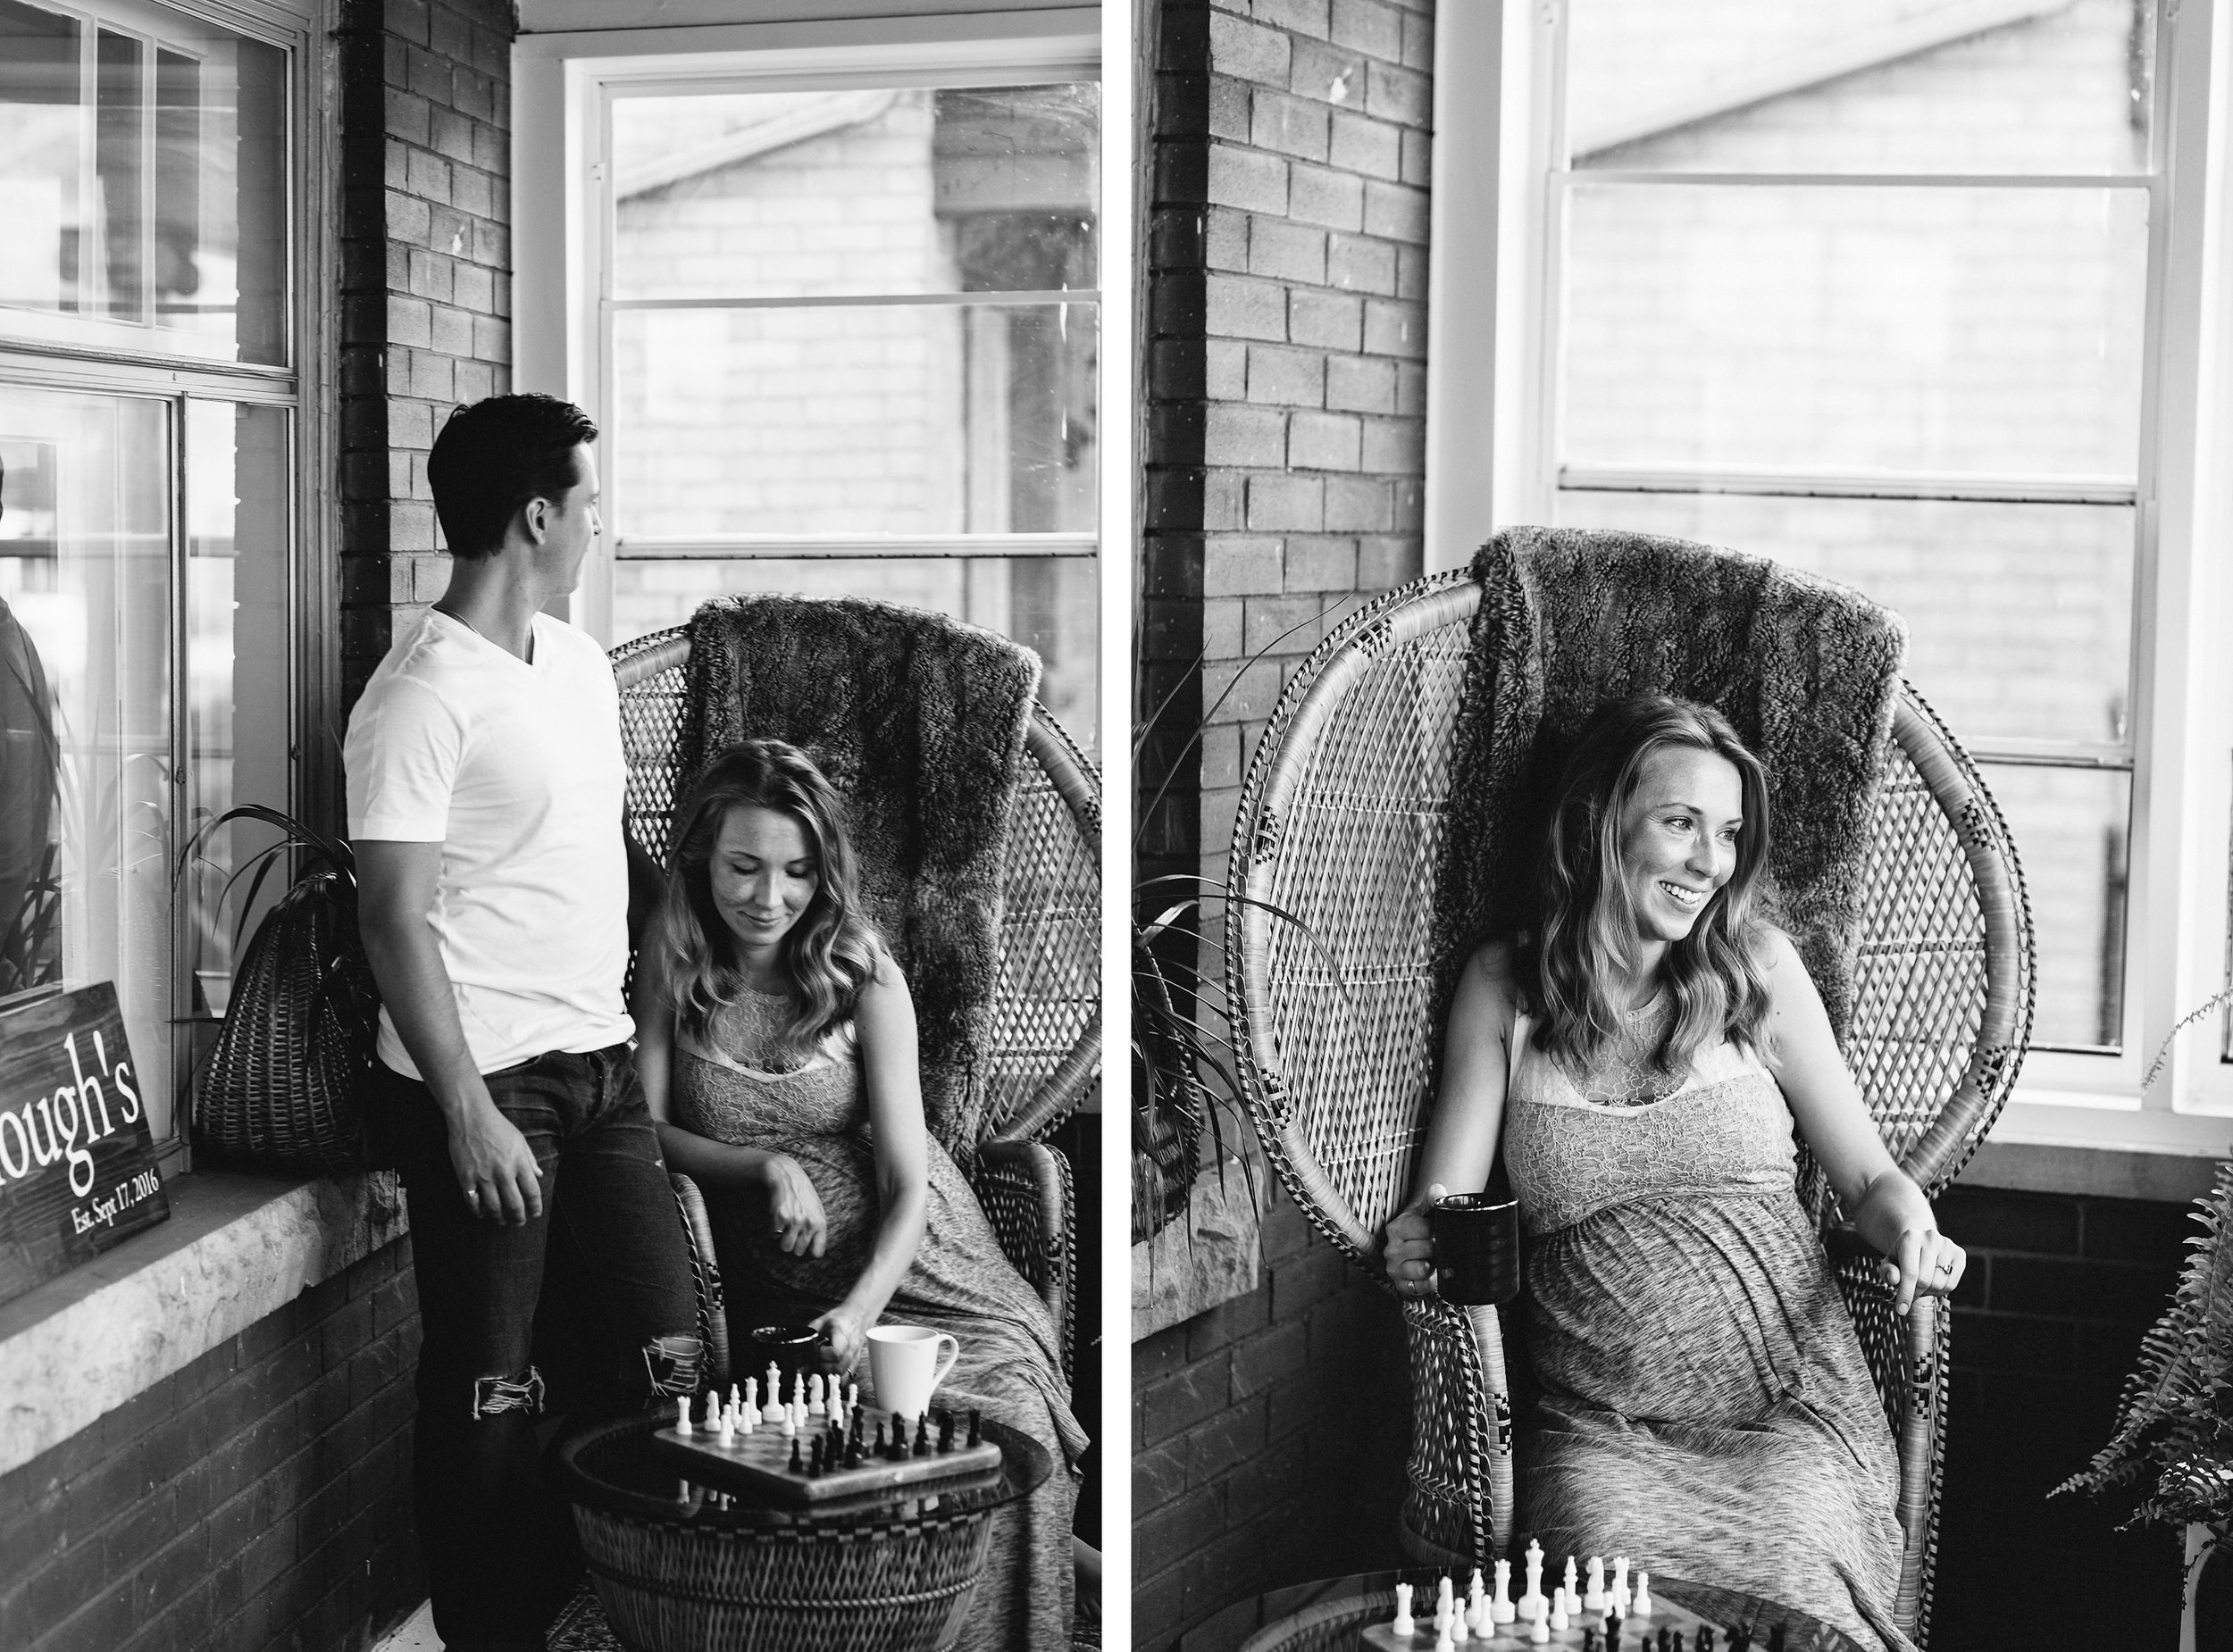 spread-3-hamilton-toronto-vintage-old-home-rustic-inhome-maternity-session-toronto-maternity-photographer-ryanne-hollies-photography-details-screen-and-porch-mother-to-be-pregnancy-glow-beautiful-candid-family-photos.jpg